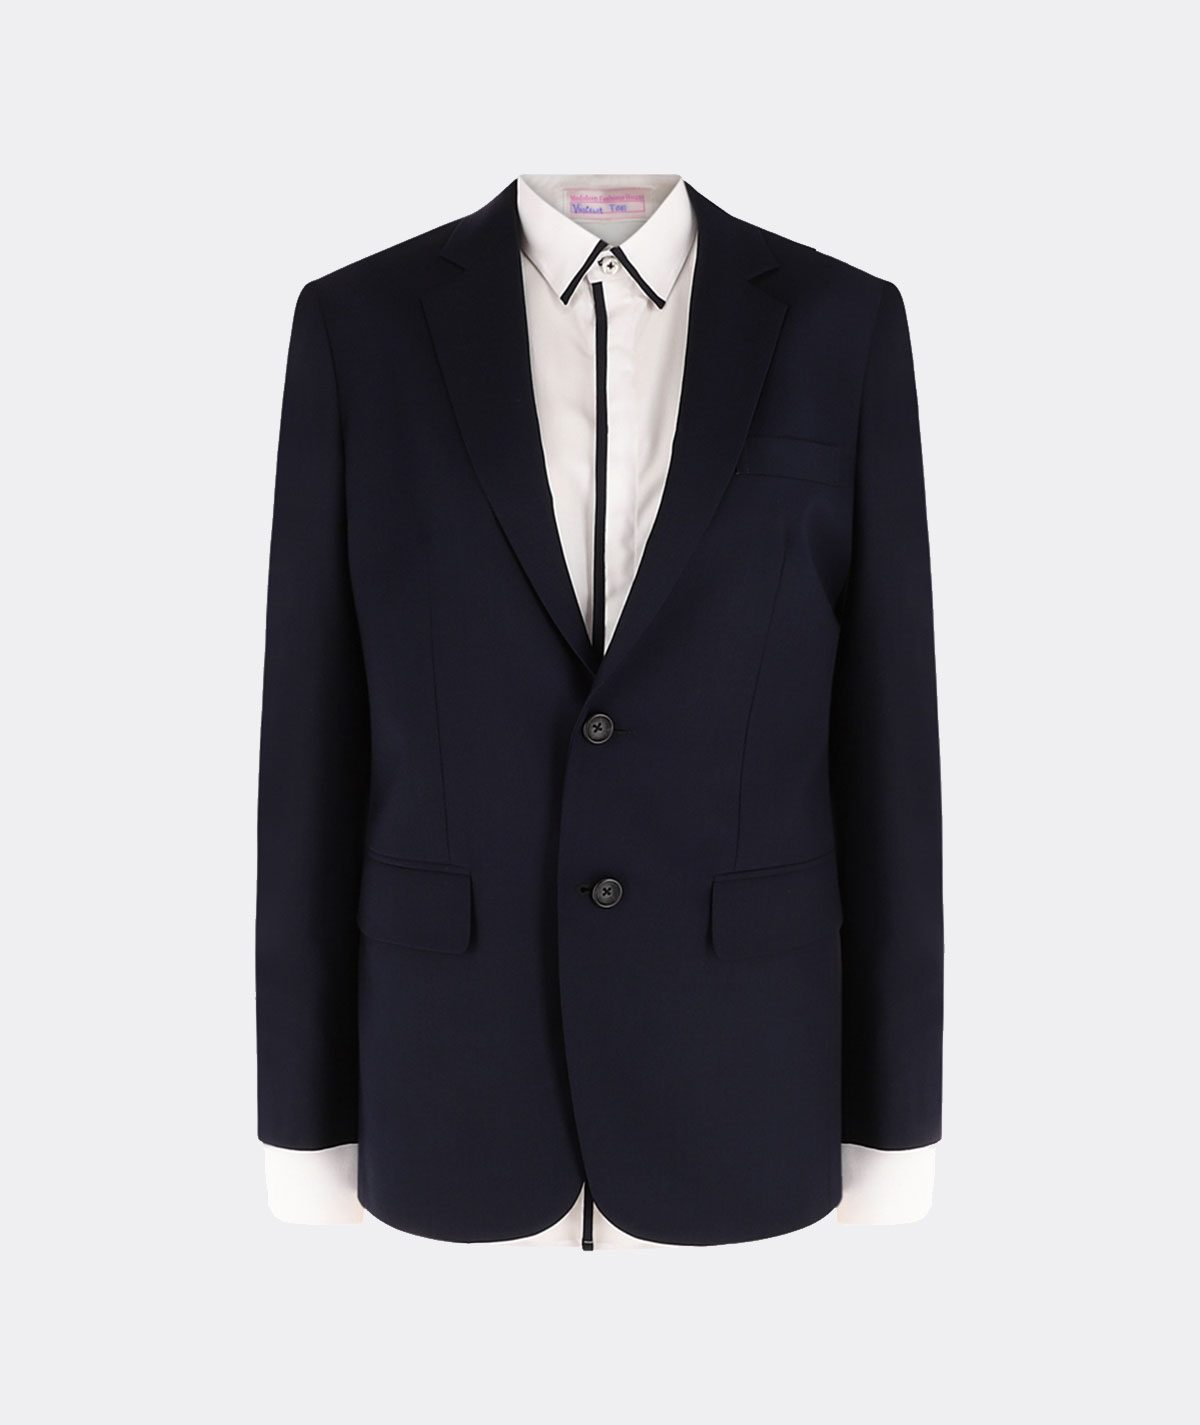 Business Sales Consultant Executive Uniform Blazer Suit